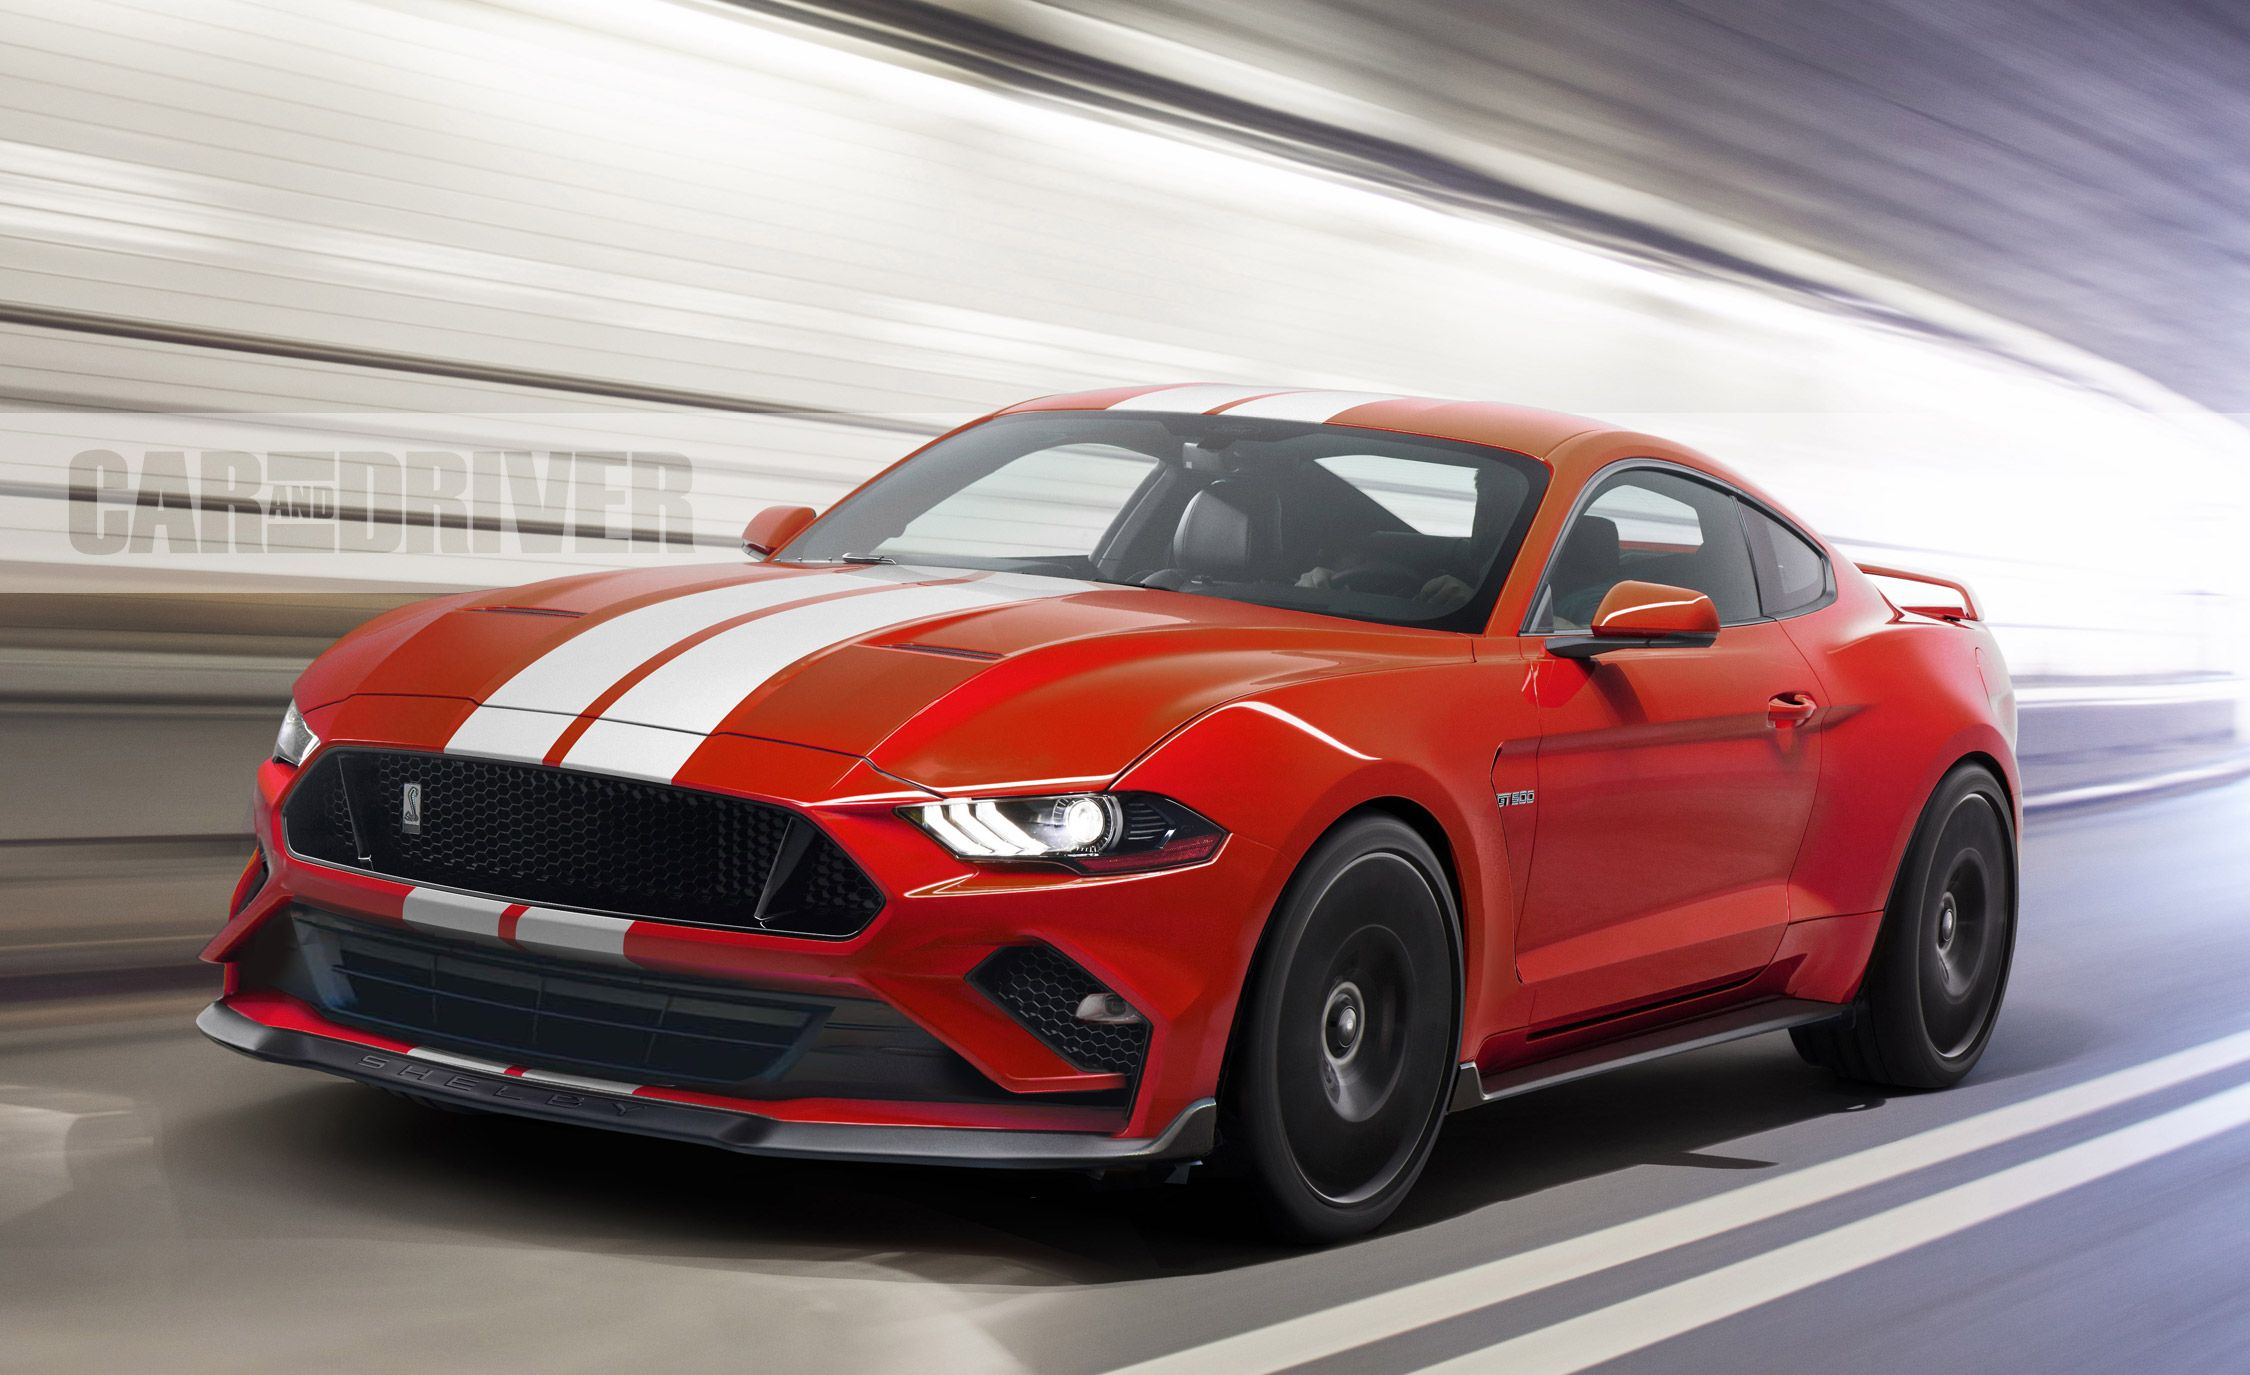 The 2018 Ford Mustang Shelby Gt500 Is A Car Worth Waiting For